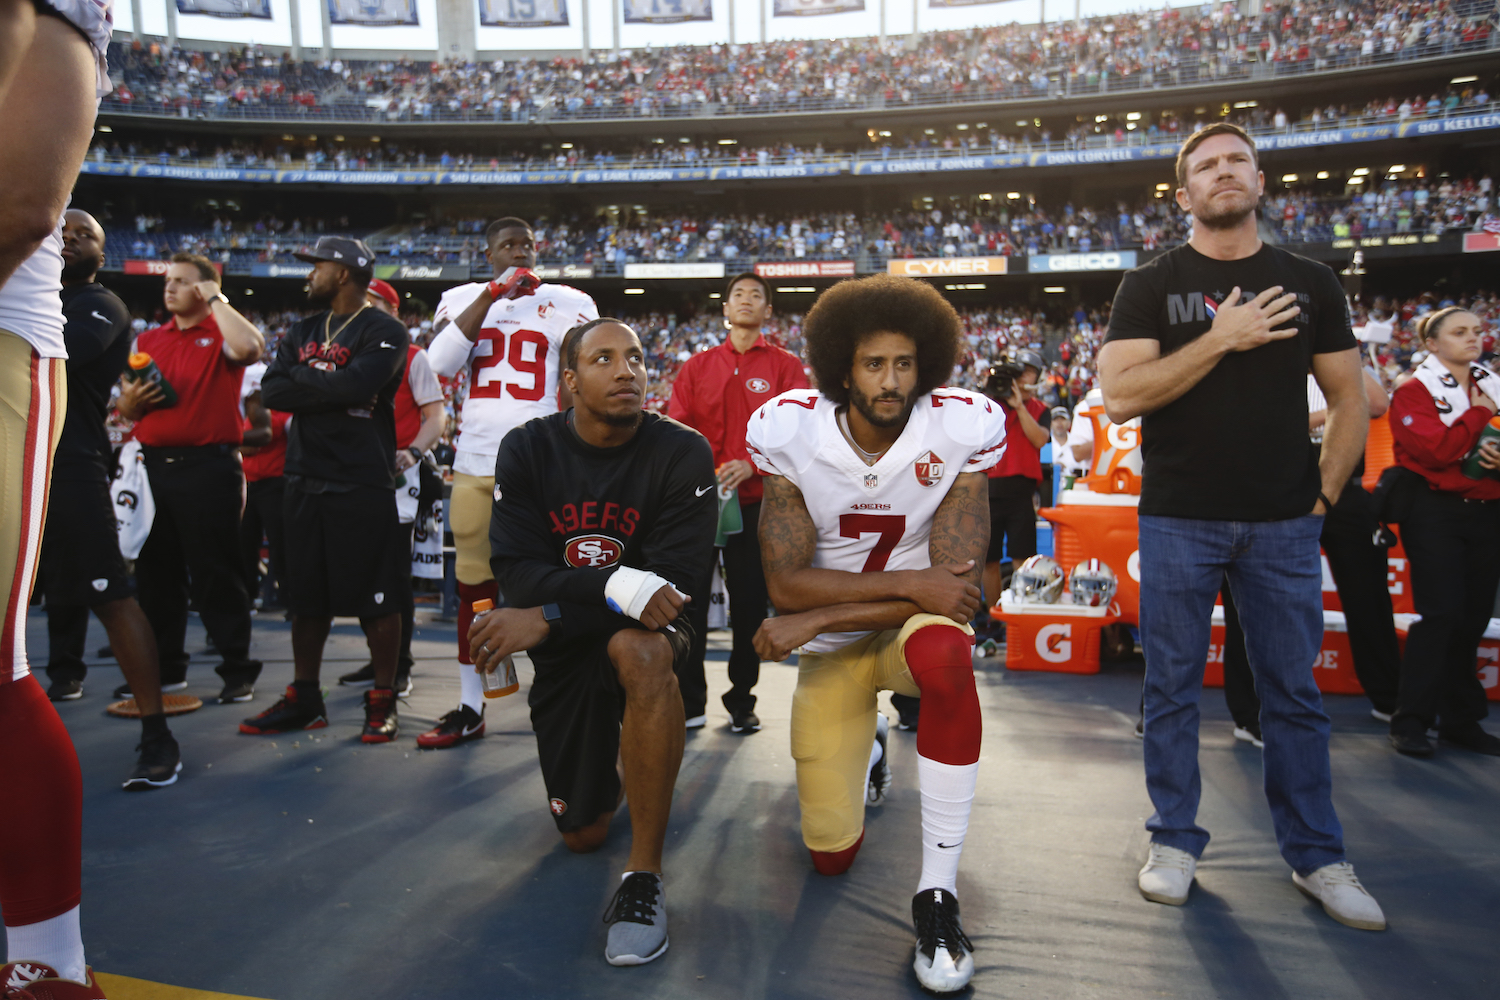 Colin Kaepernick First Protested Police Brutality 4 Years Ago Today